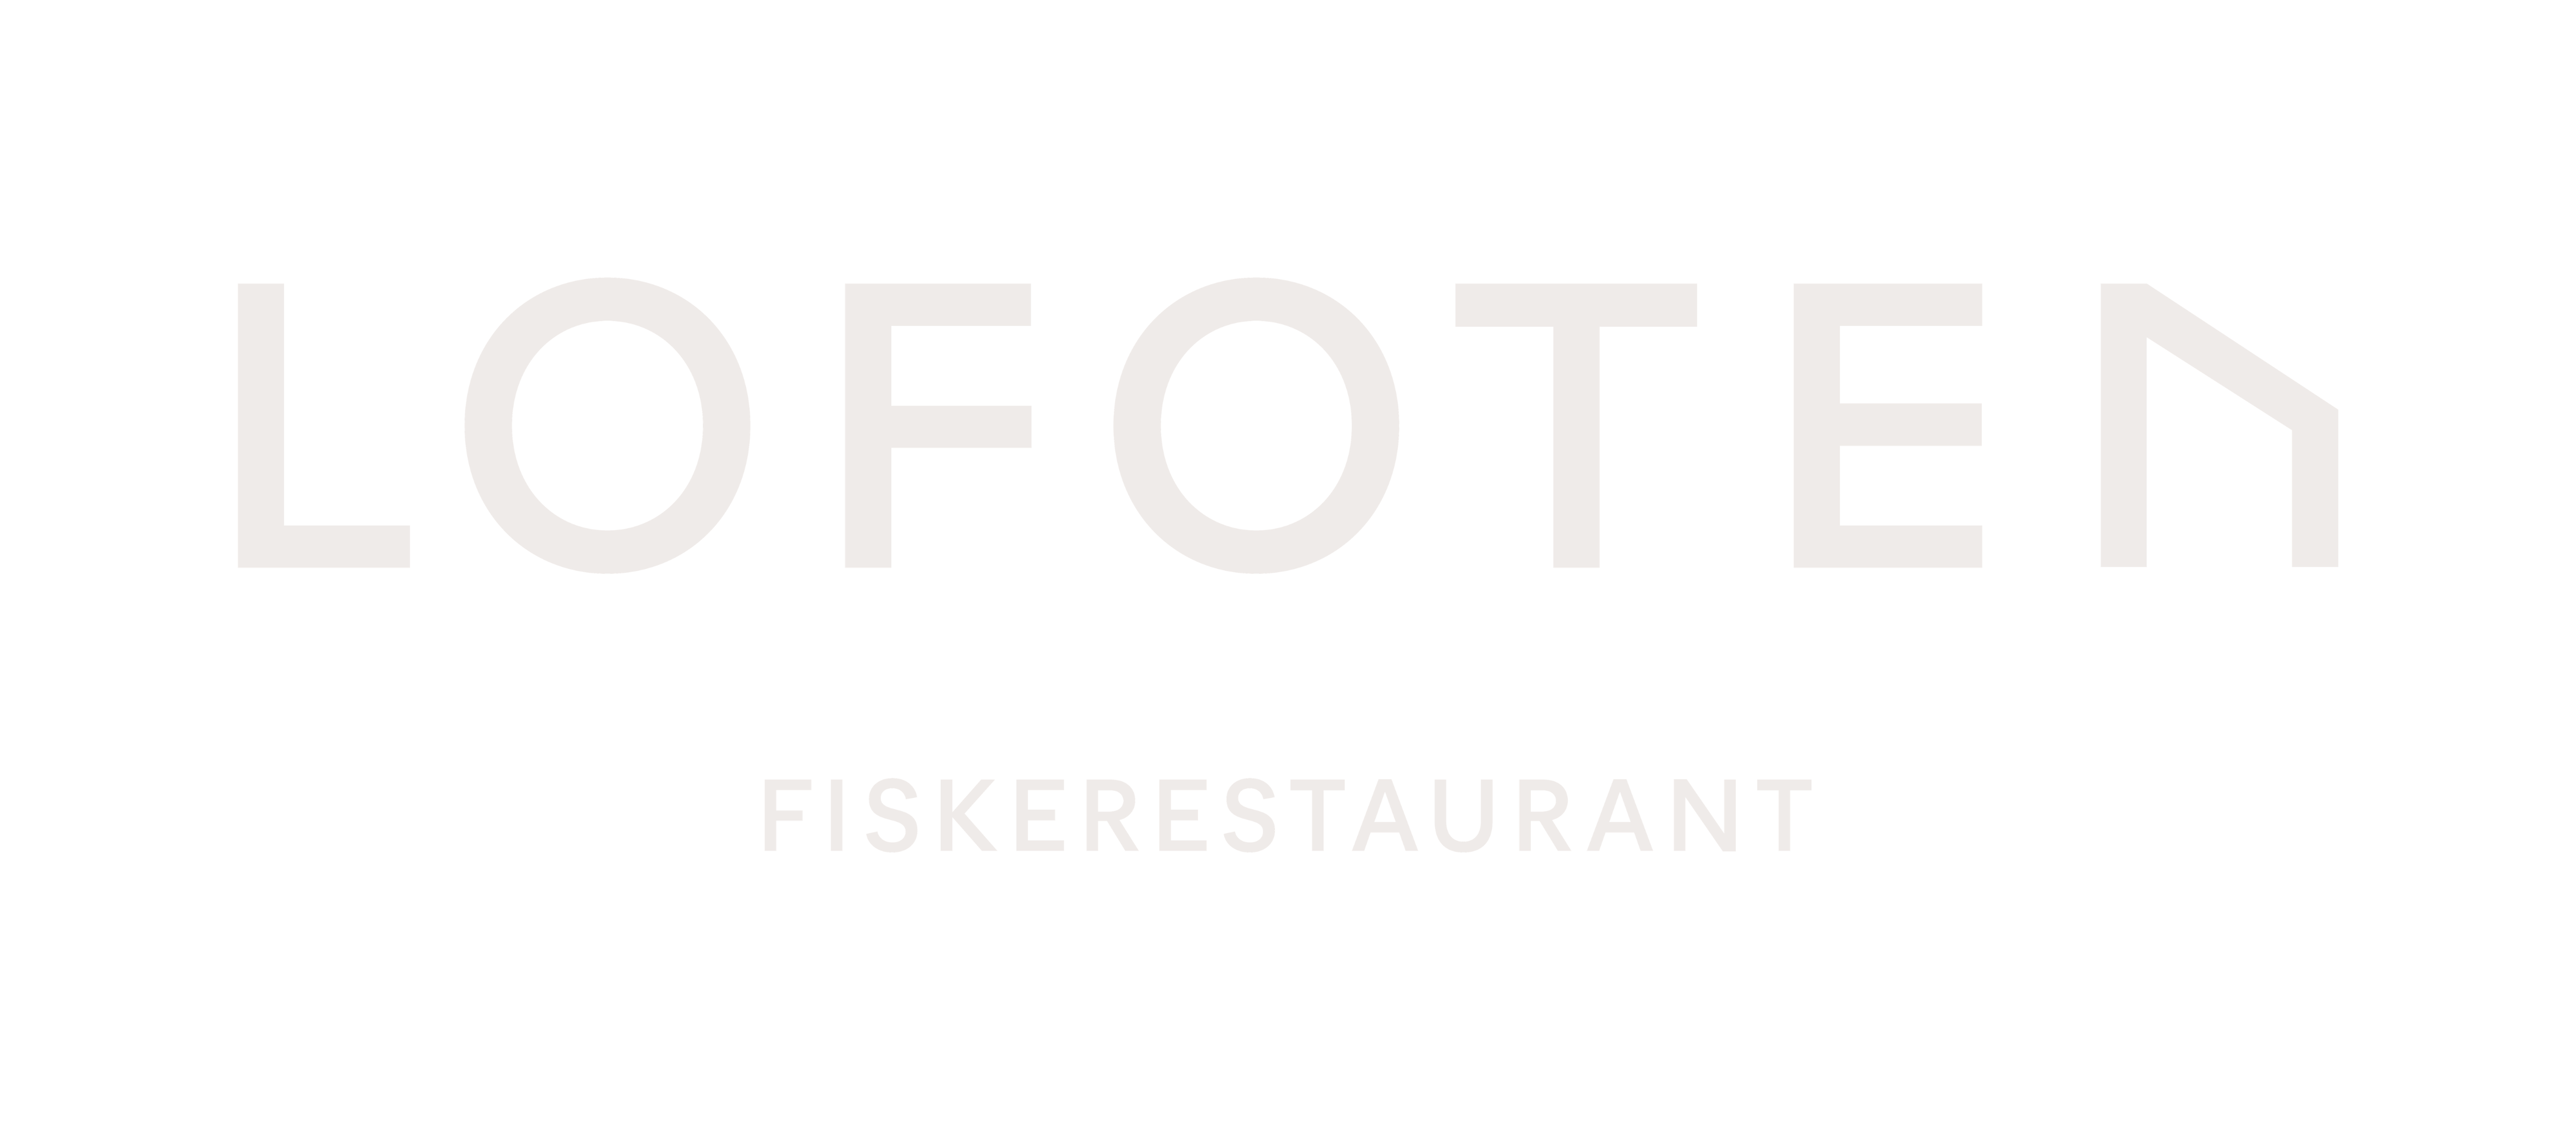 fg_lofoten_original_logo_m_tagline_light-01